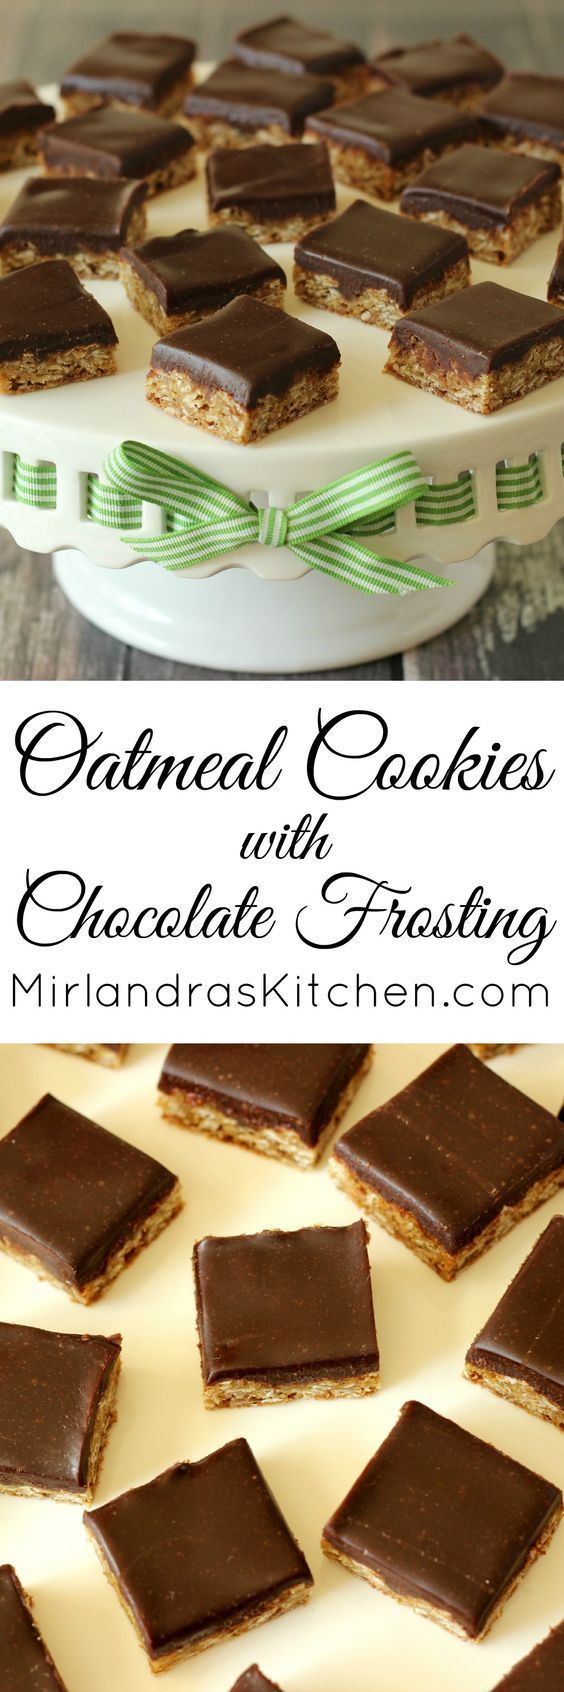 These oatmeal cookies with chocolate frosting are as decadent as they come. Rich, buttery frosting with deep chocolate flavor tops moist, chewy cookies.  Thankfully, they are also easy to make so you can have a wonderful batch any time you like.